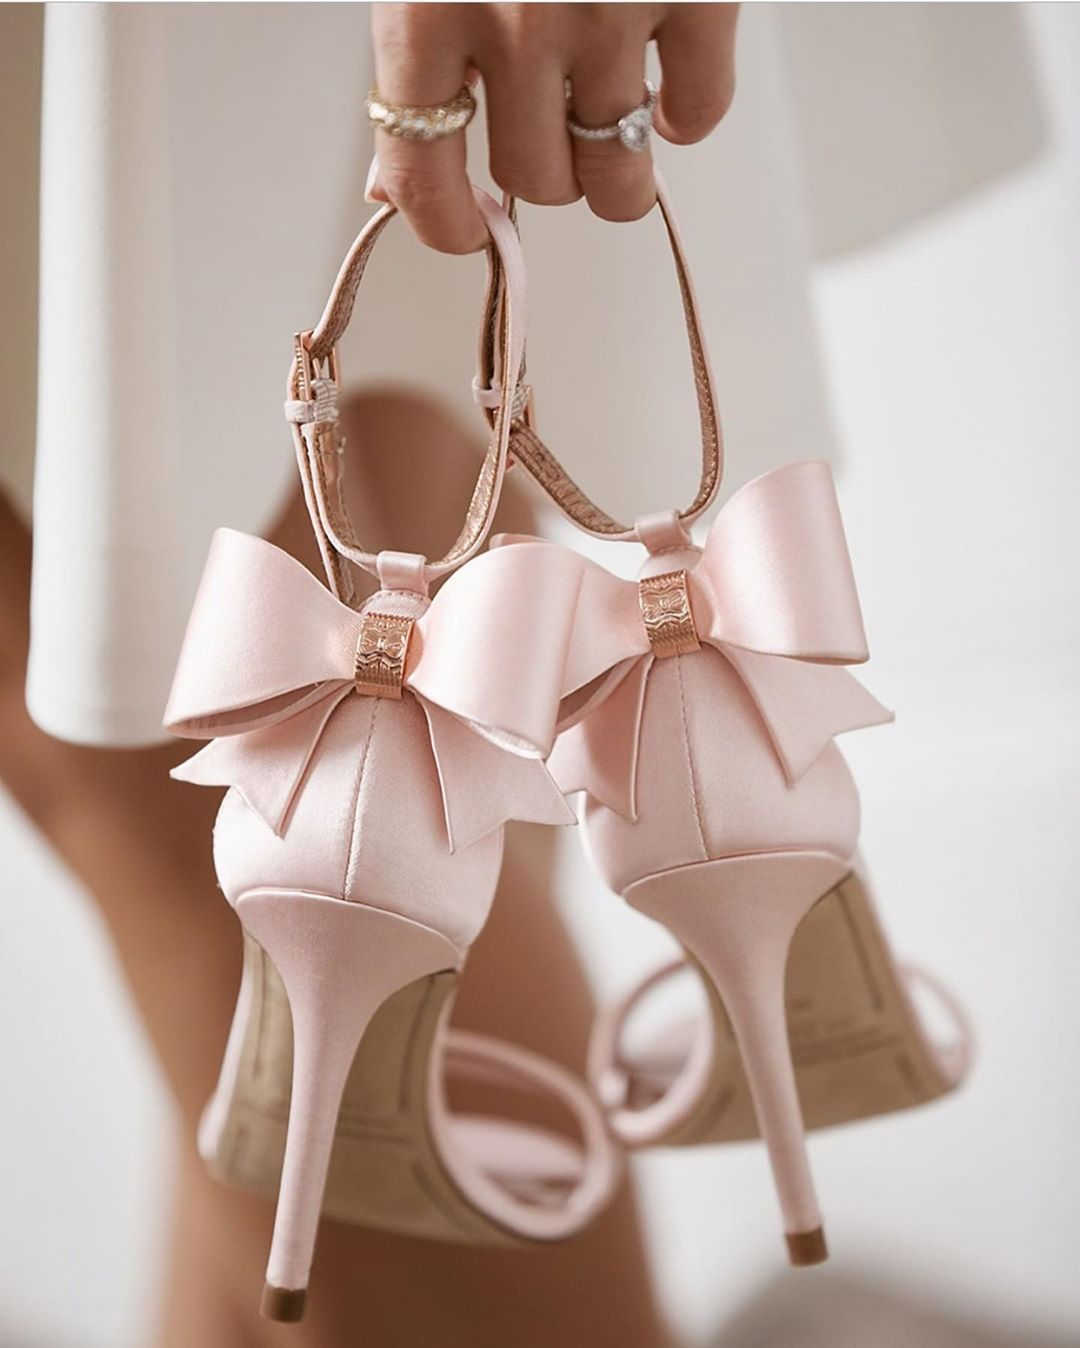 Pnina Tornai On Instagram Pretty In Pink Don T Be Afraid To Add A Pop Of Color To Your Wedding Day Footwear Design Women Bow Heels Beautiful Wedding Shoes